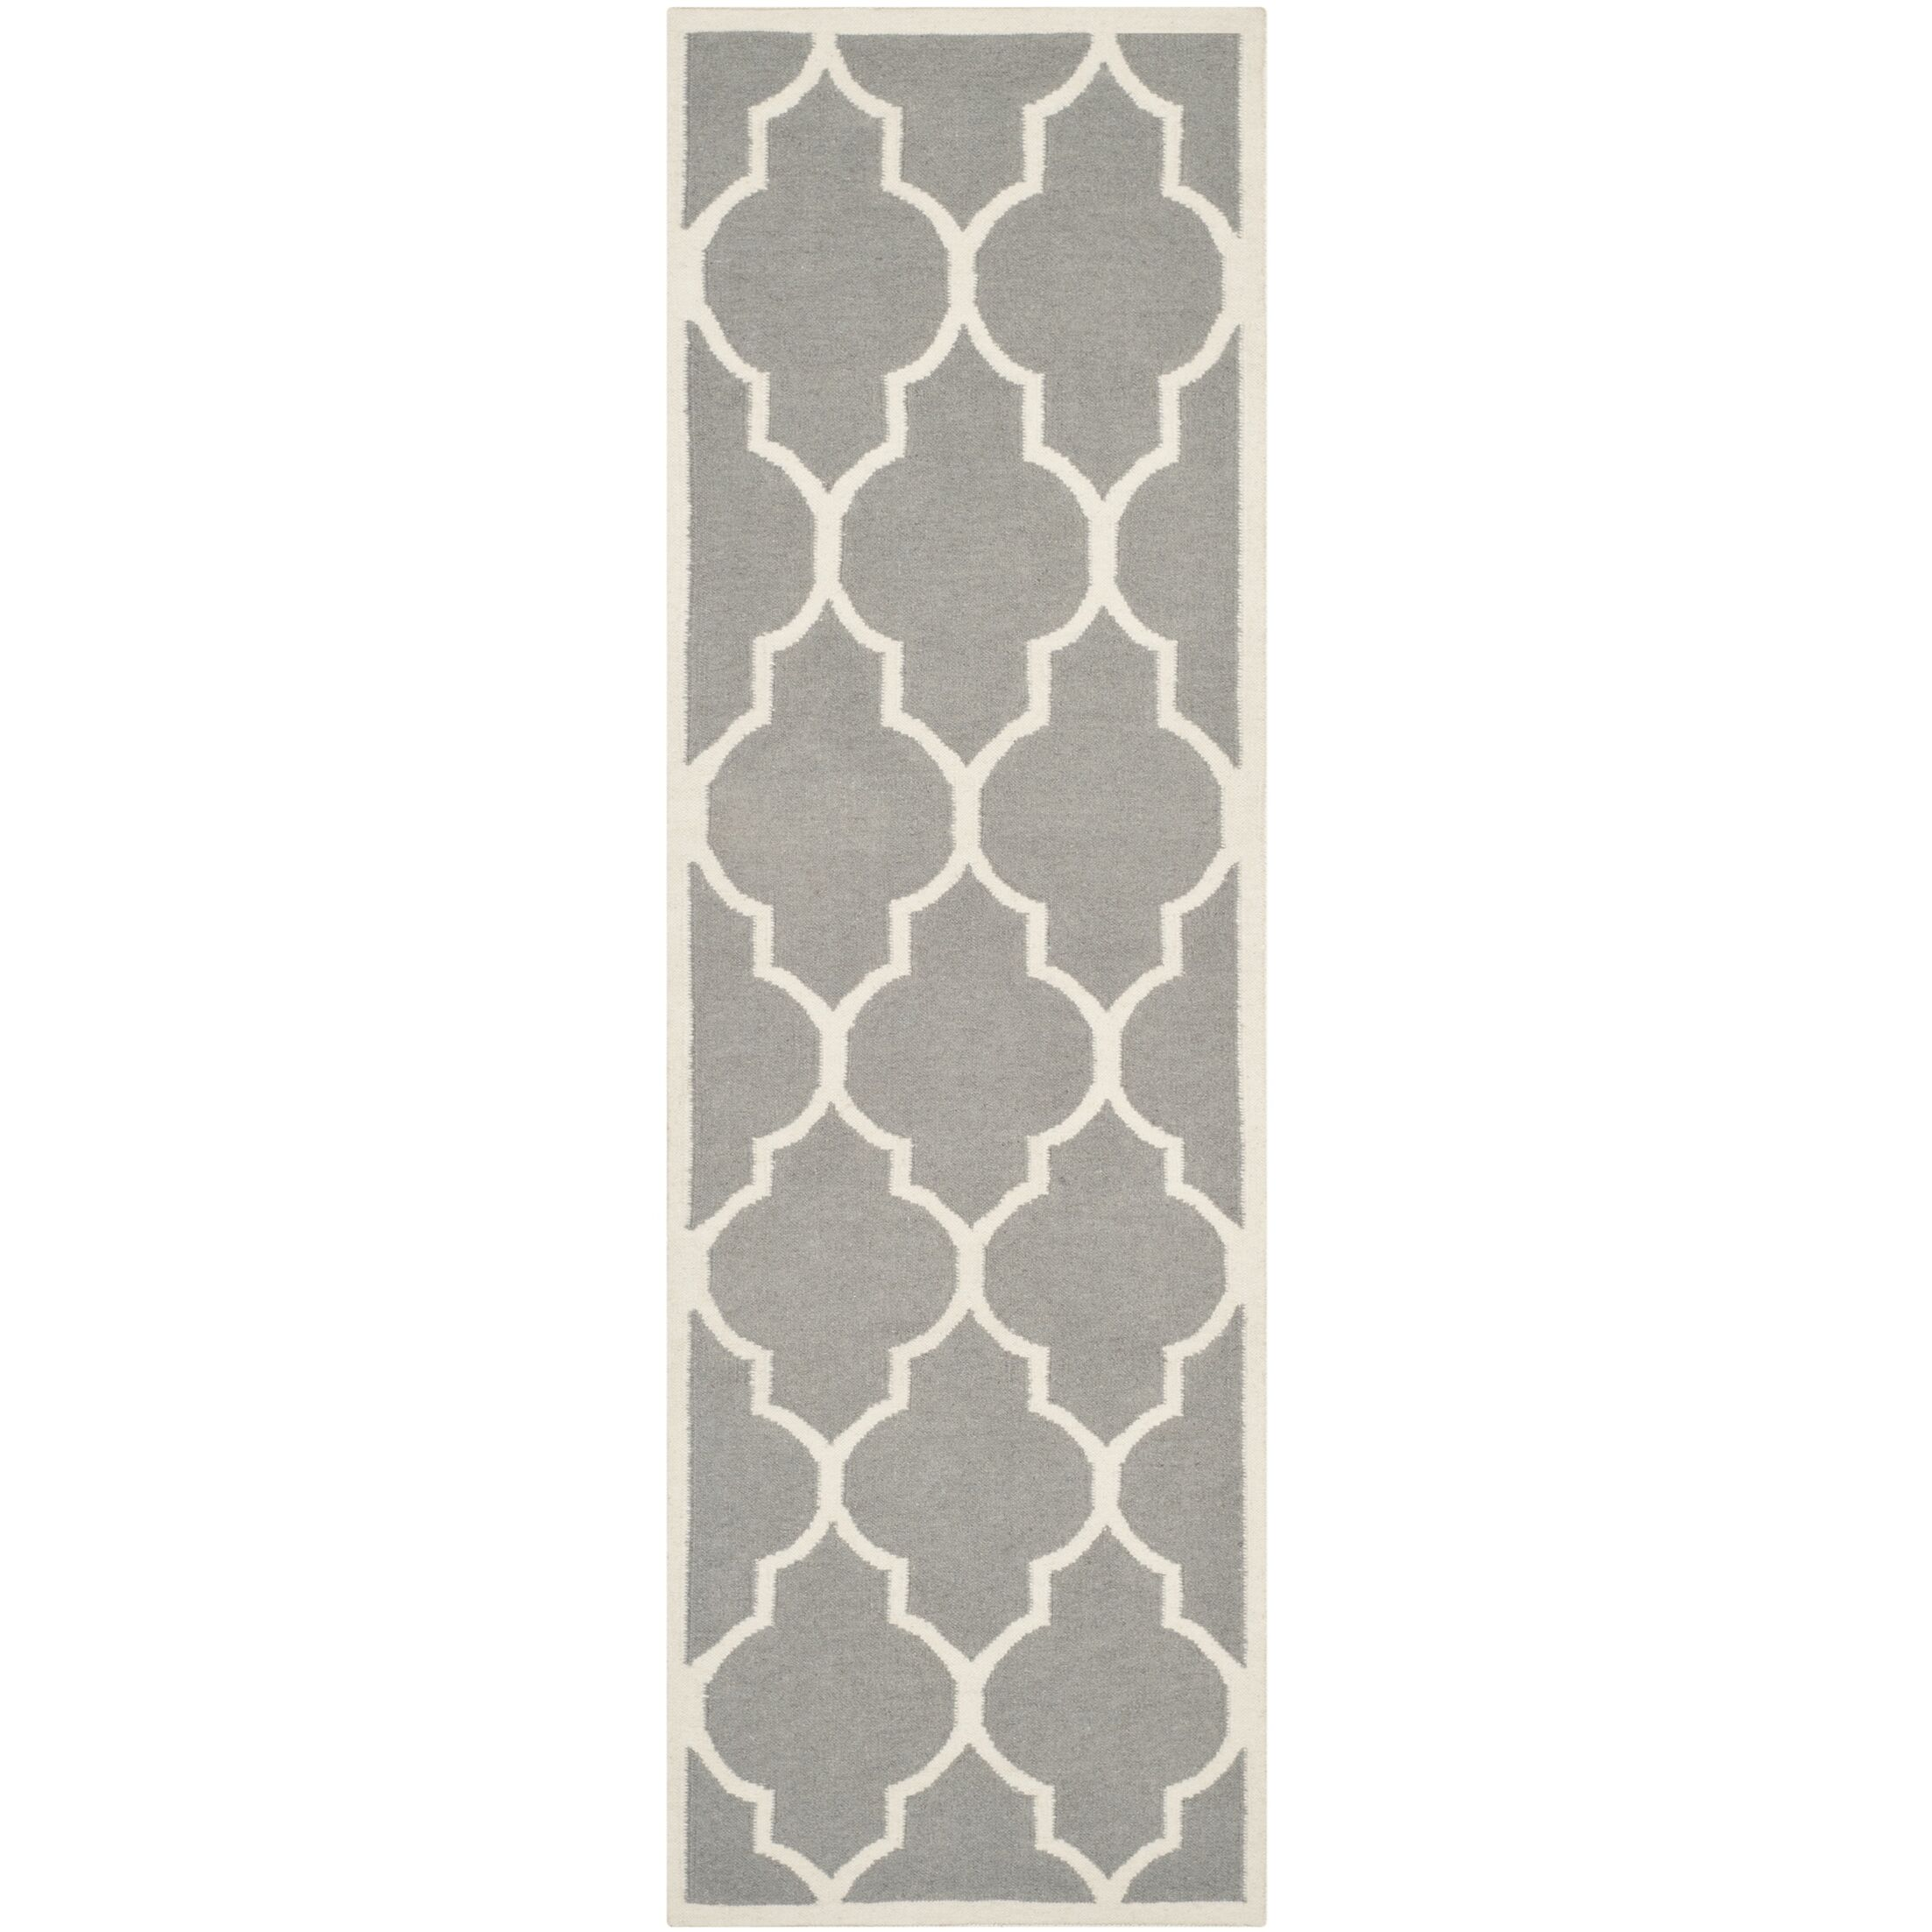 Dhurries Hand-Woven Wool Gray/Ivory Area Rug Rug Size: Runner 2'6